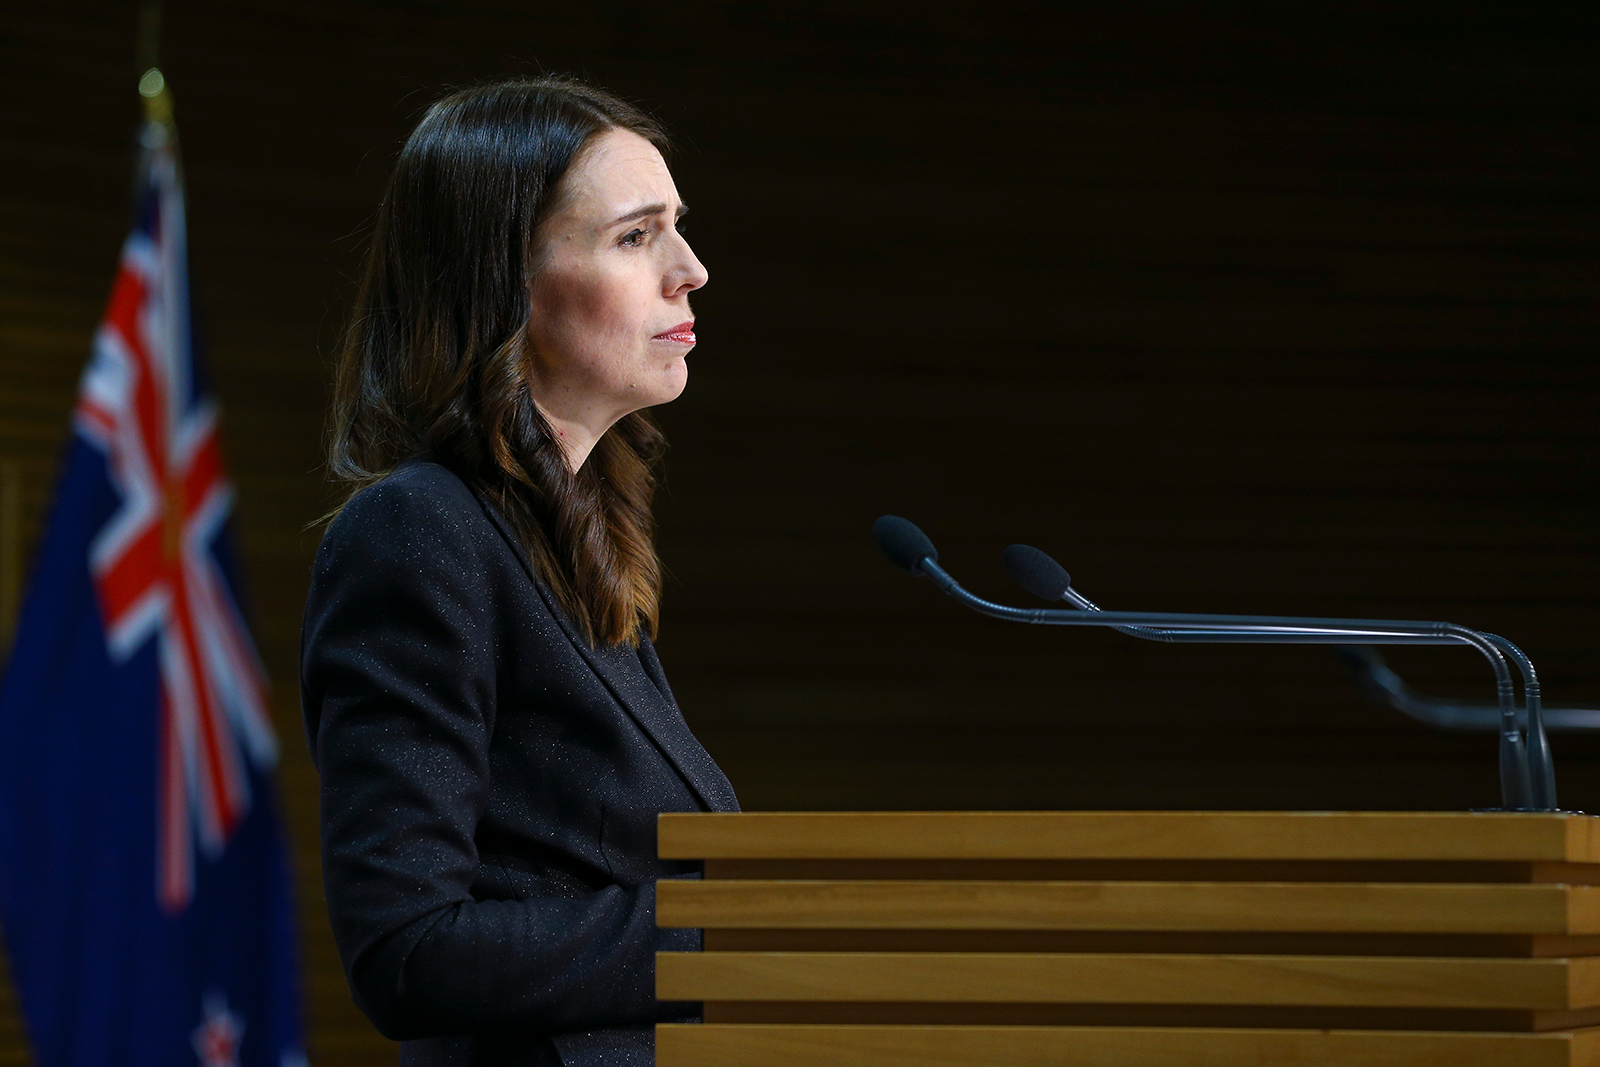 Prime Minister Jacinda Ardern at a press conference on May 27, in Wellington, New Zealand.